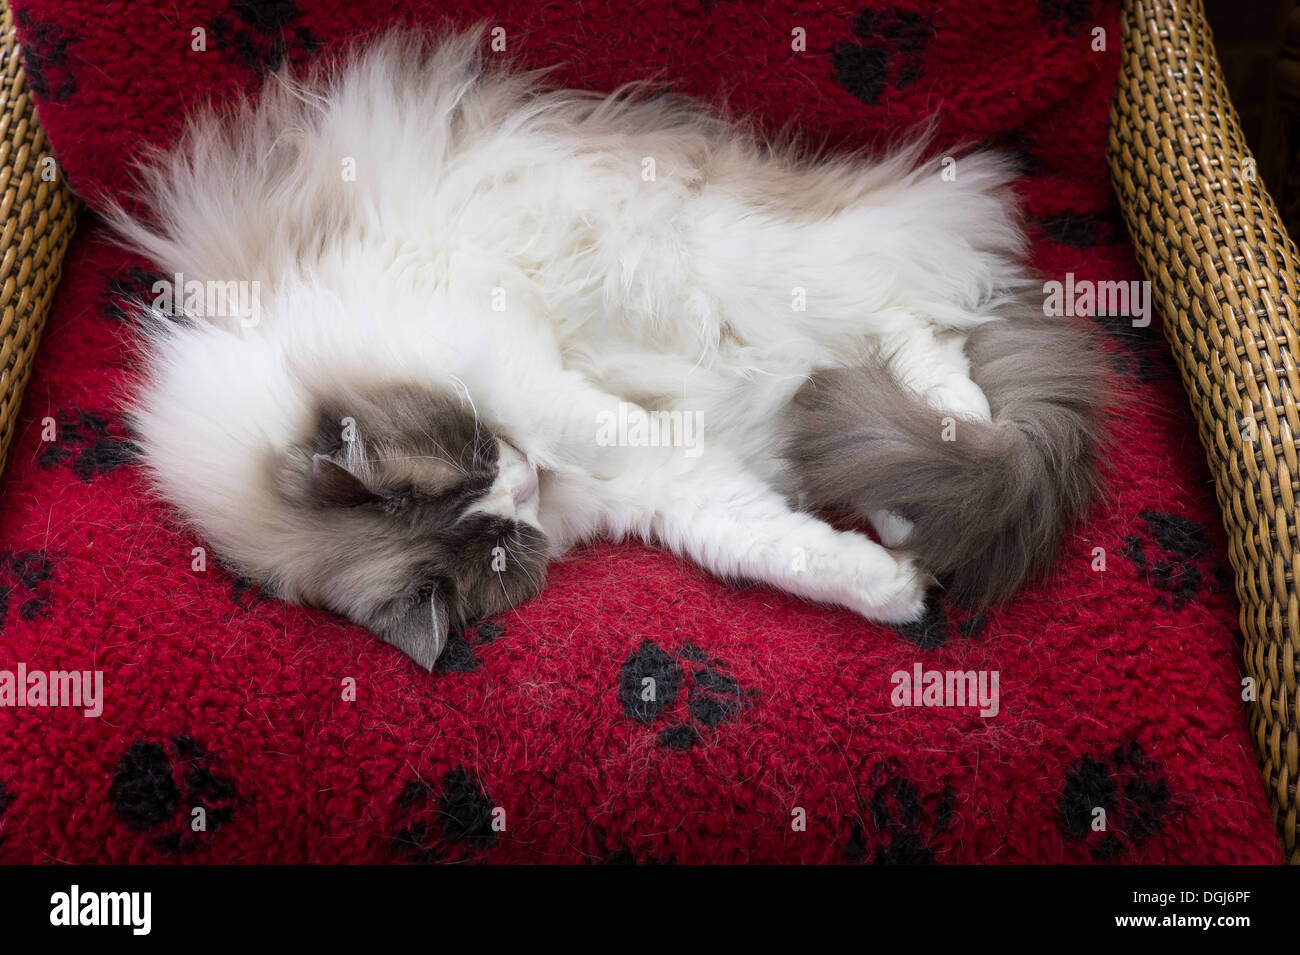 Adult male Ragdoll cat asleep on a red bed - Stock Image